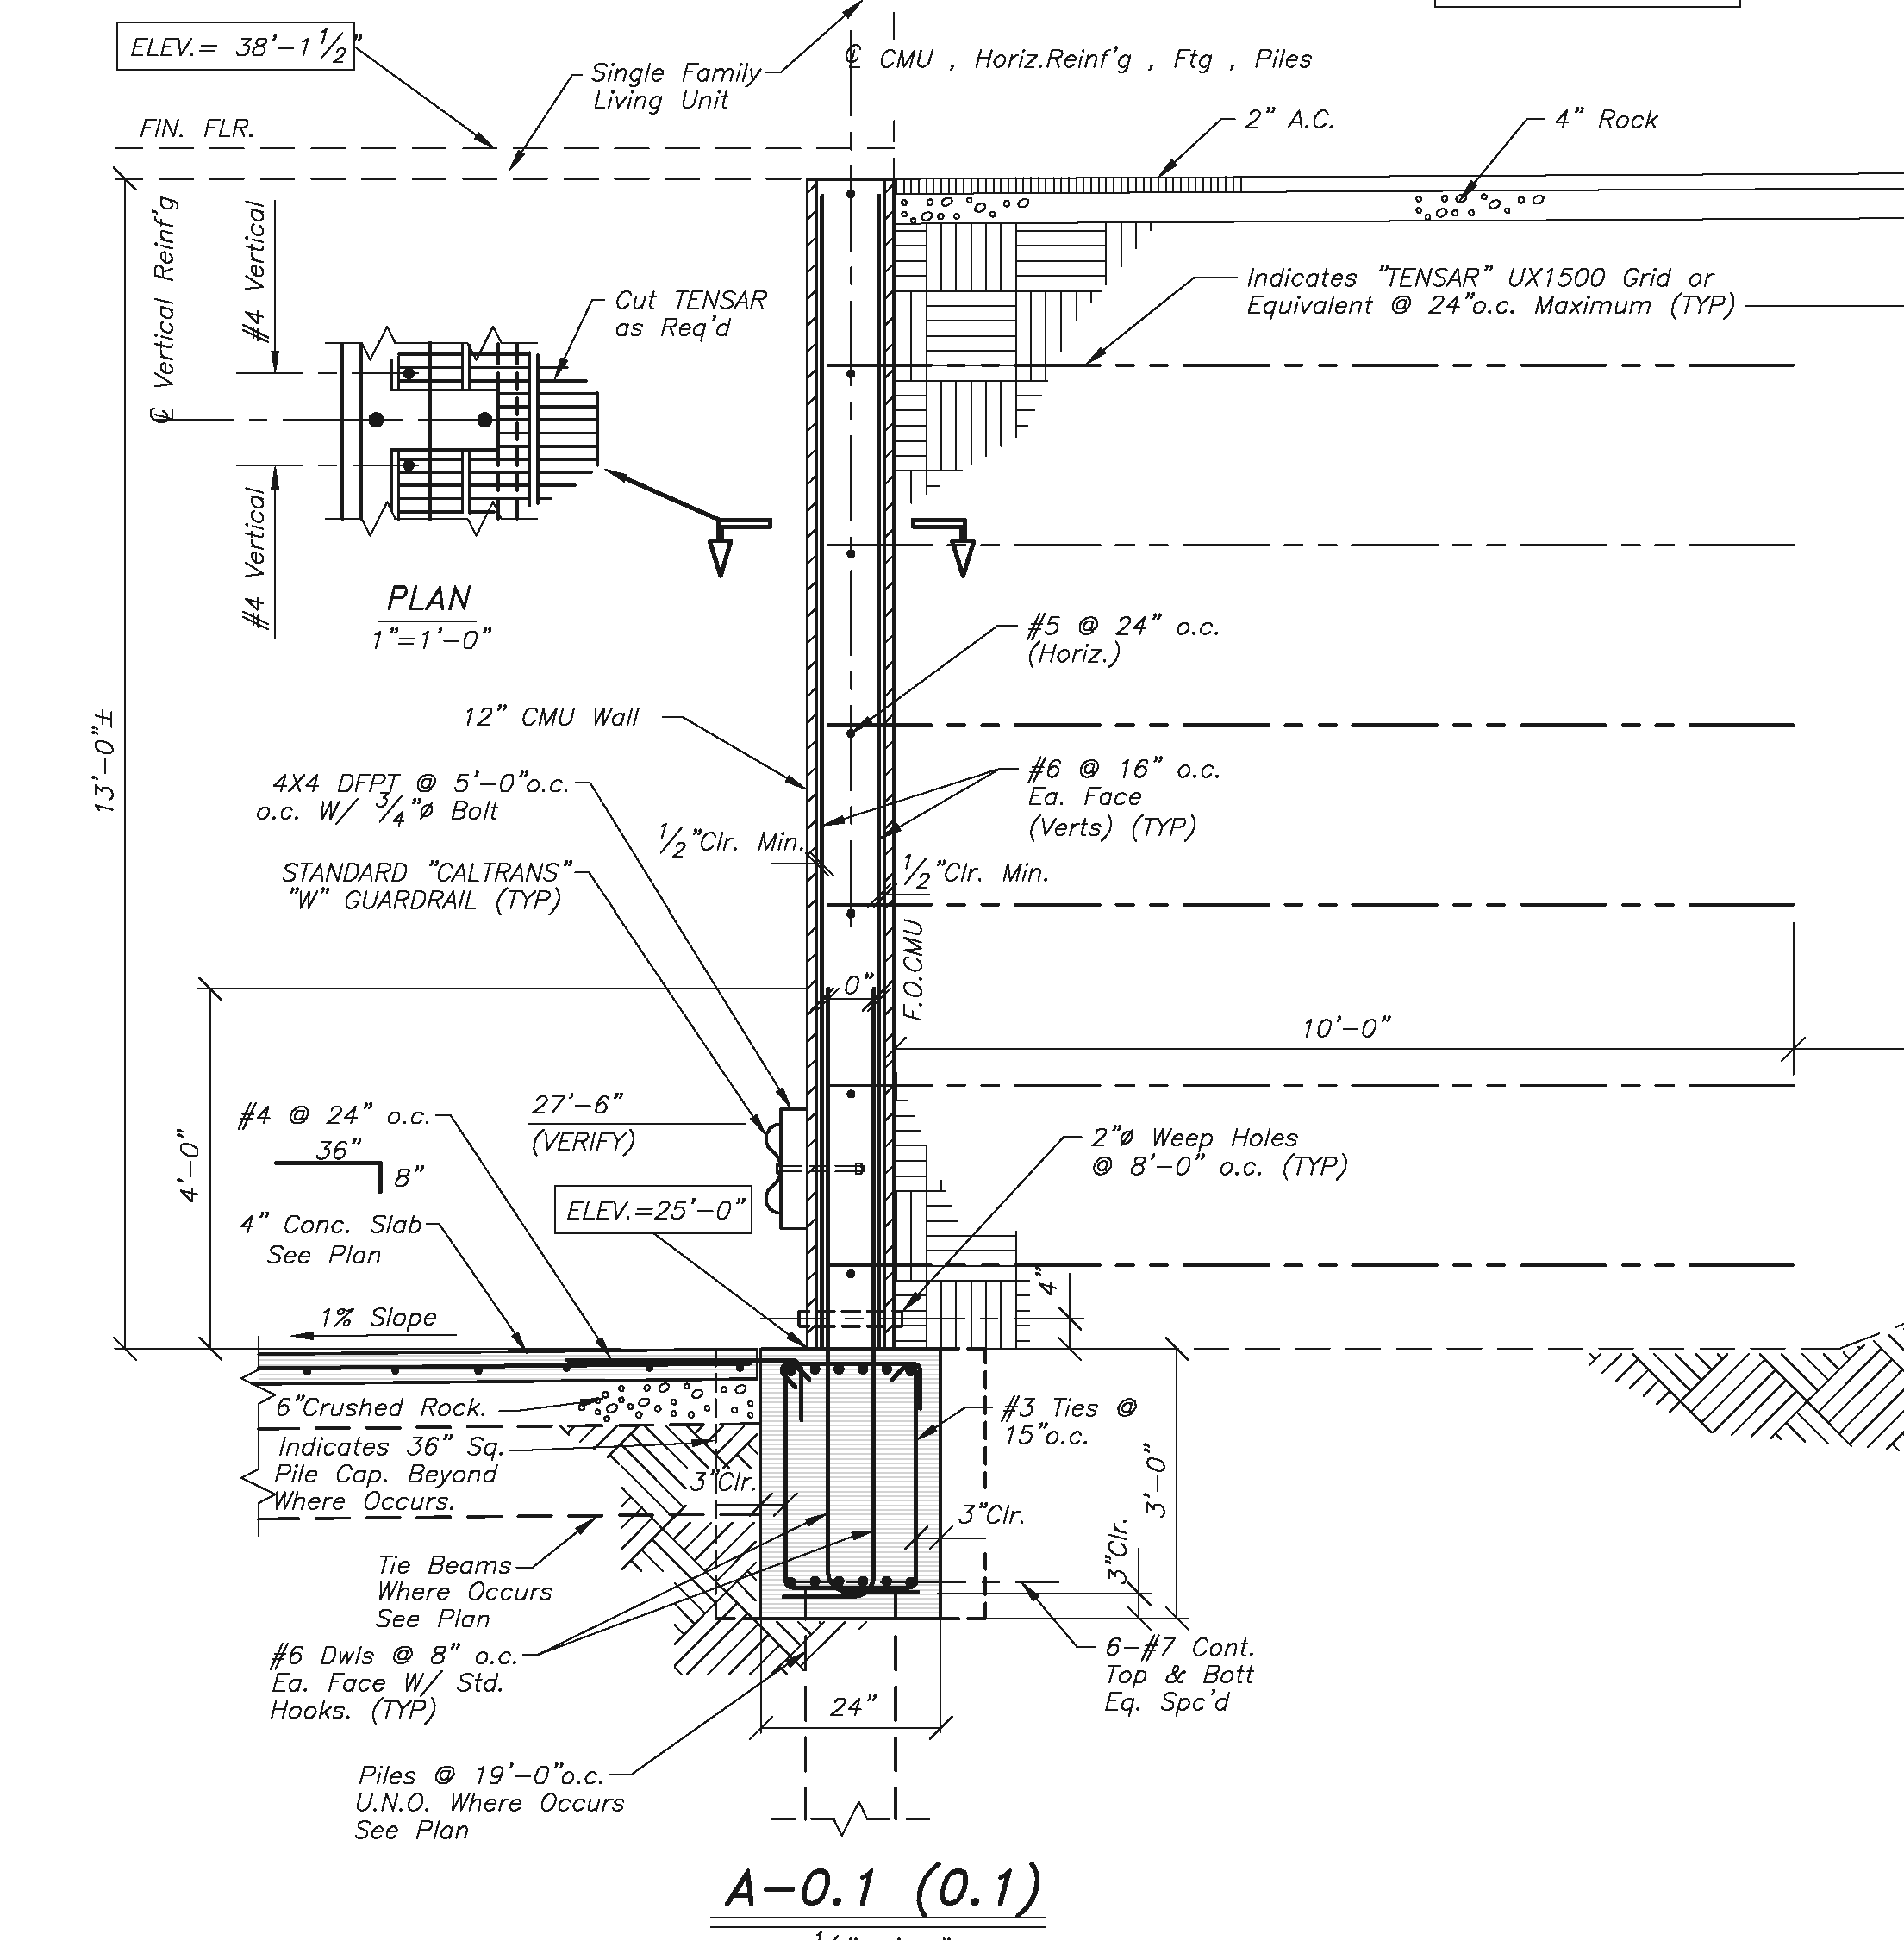 S0 1 Detail A 0 1 River Landing Structural Drawings